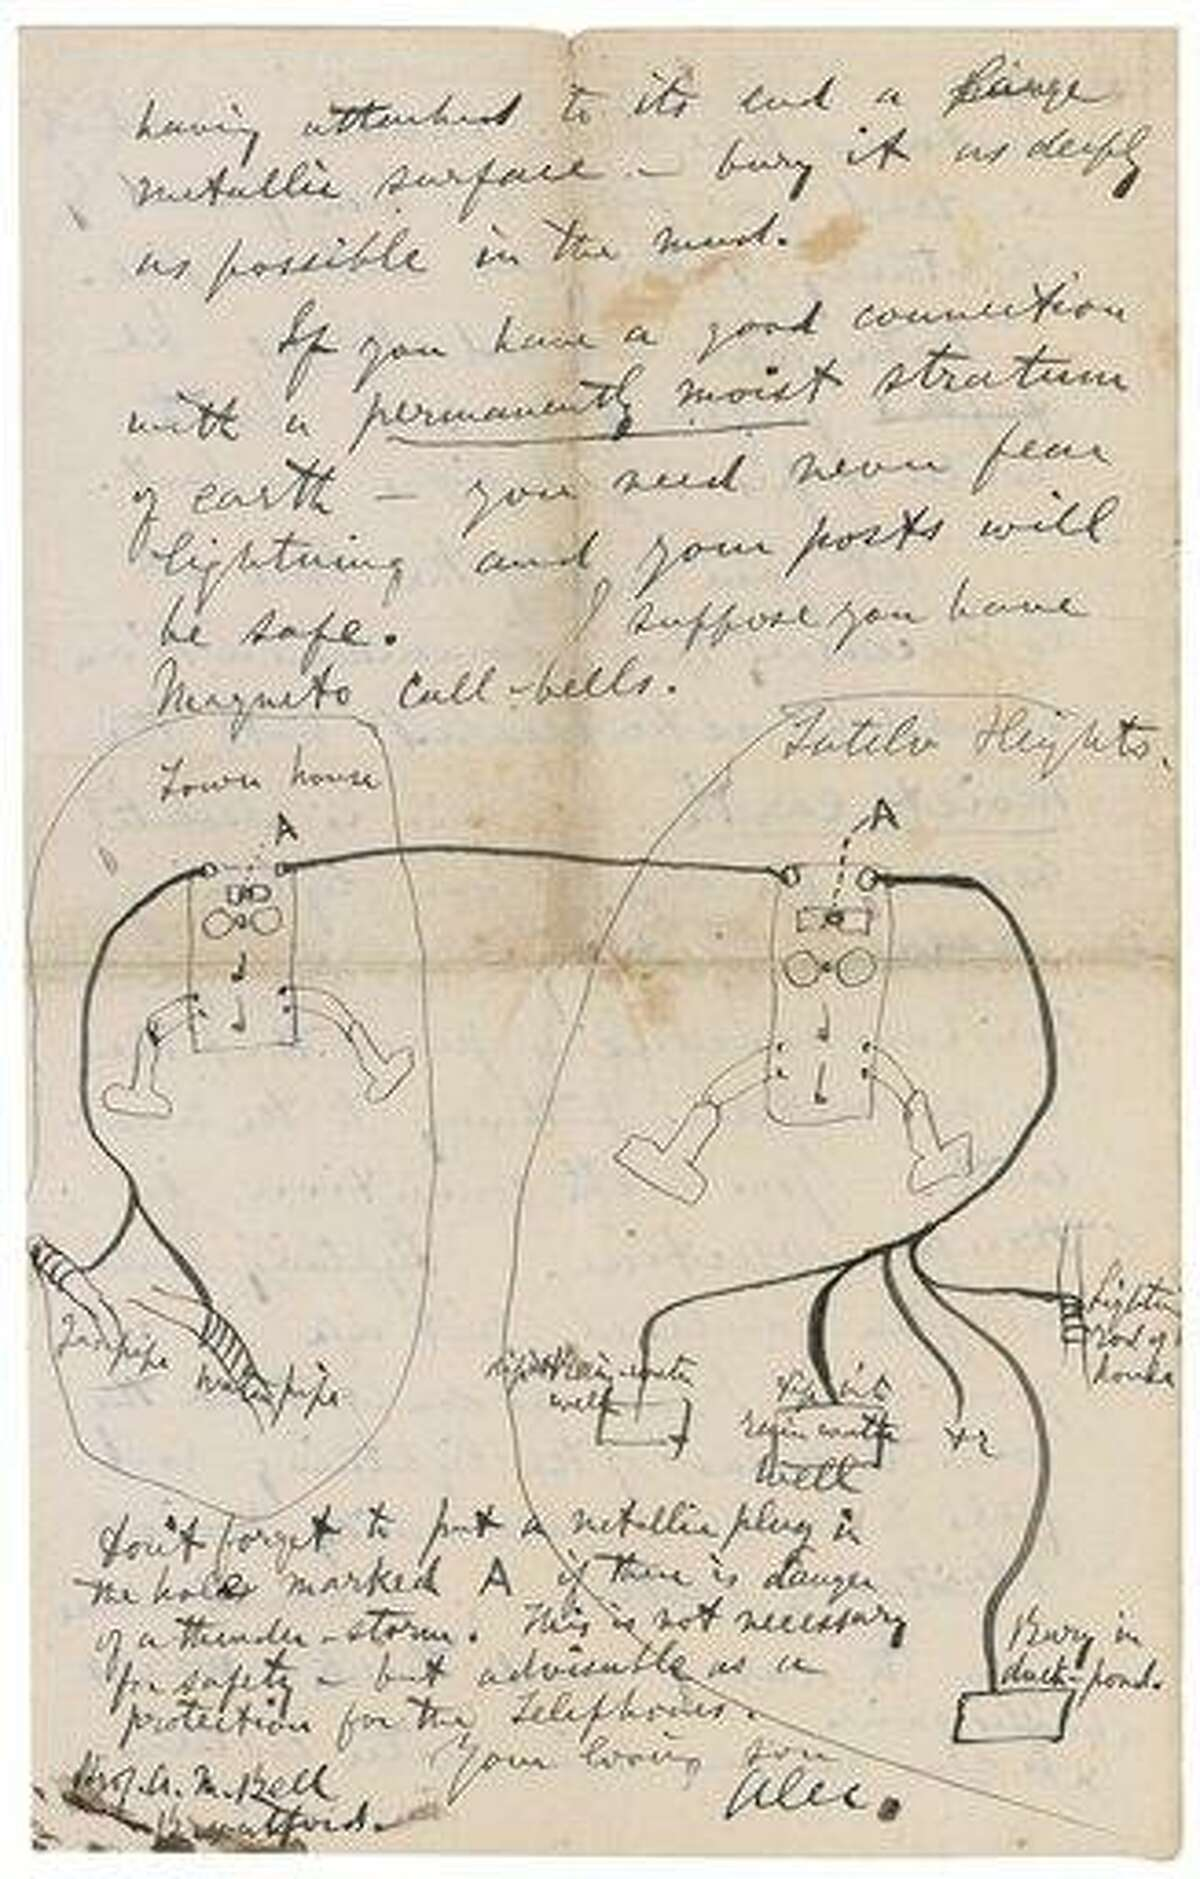 A page of an 1878 letter that Alexander Graham Bell sent to his parent. The drawing and accompanying discussion instructs how to ground the telephone Bell had invented. Associated Press